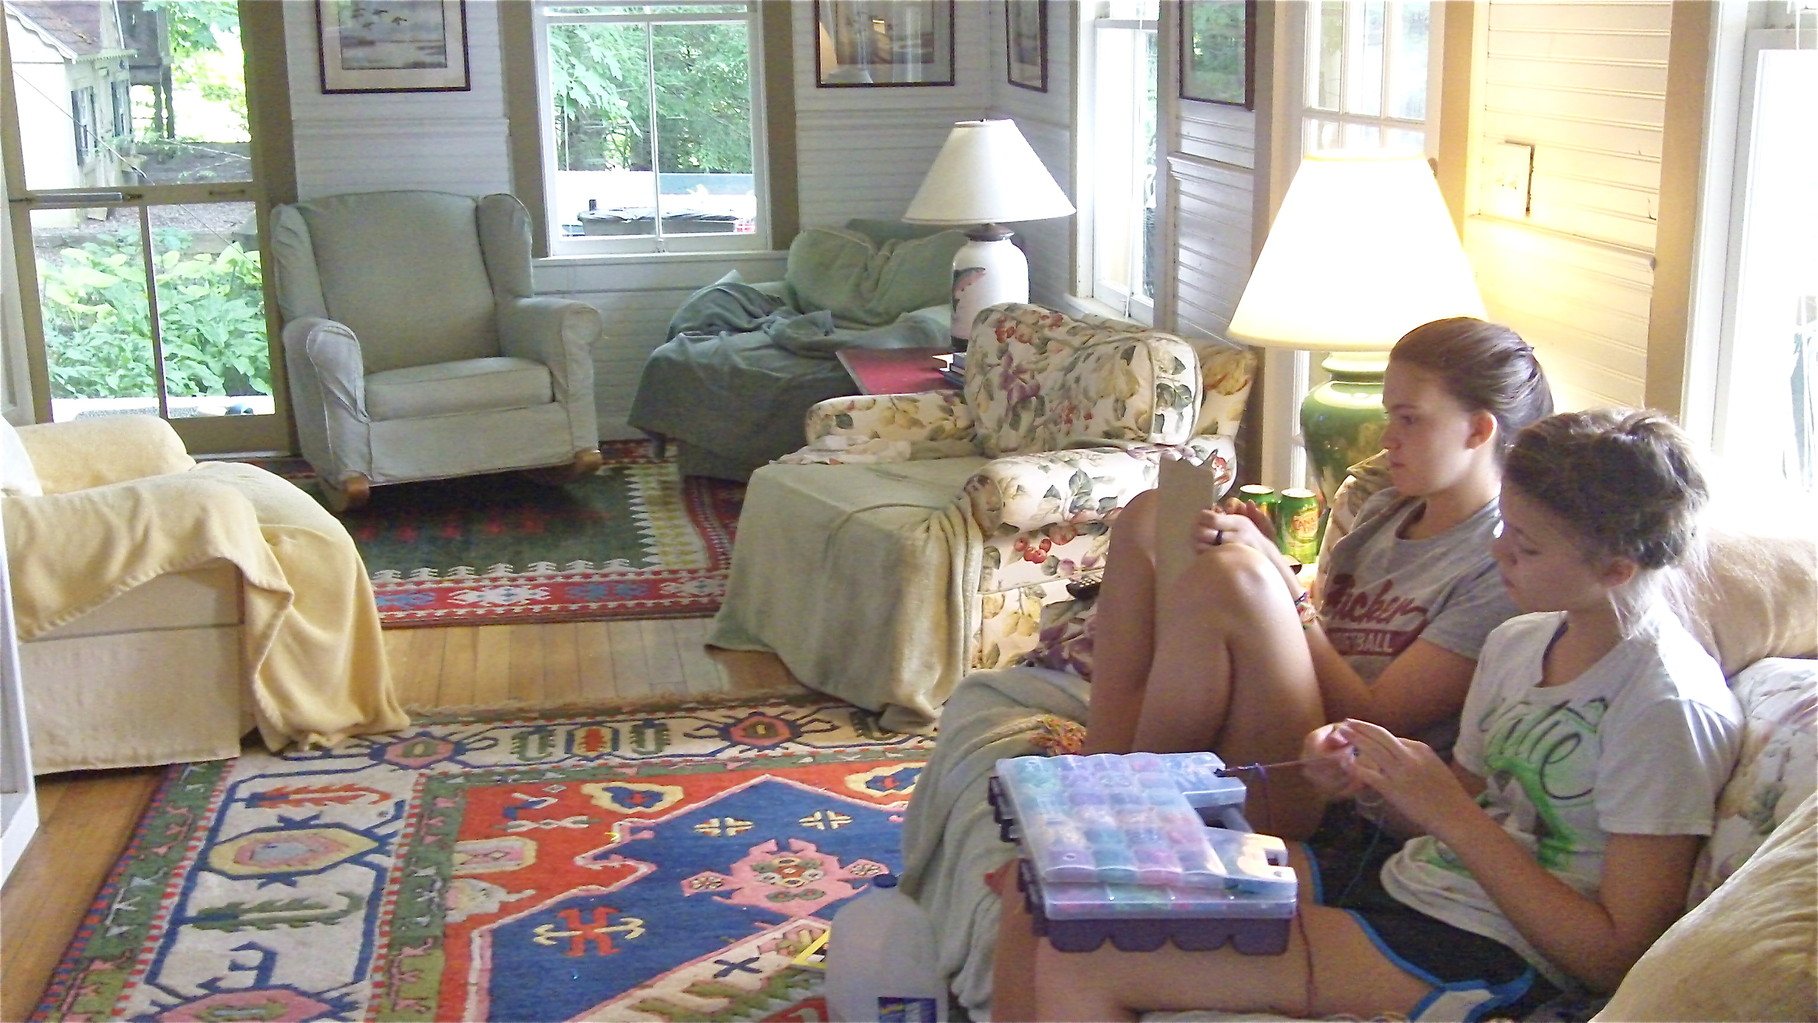 The girls make bracelets on a rainy day in July, 2014, at the lakehouse.